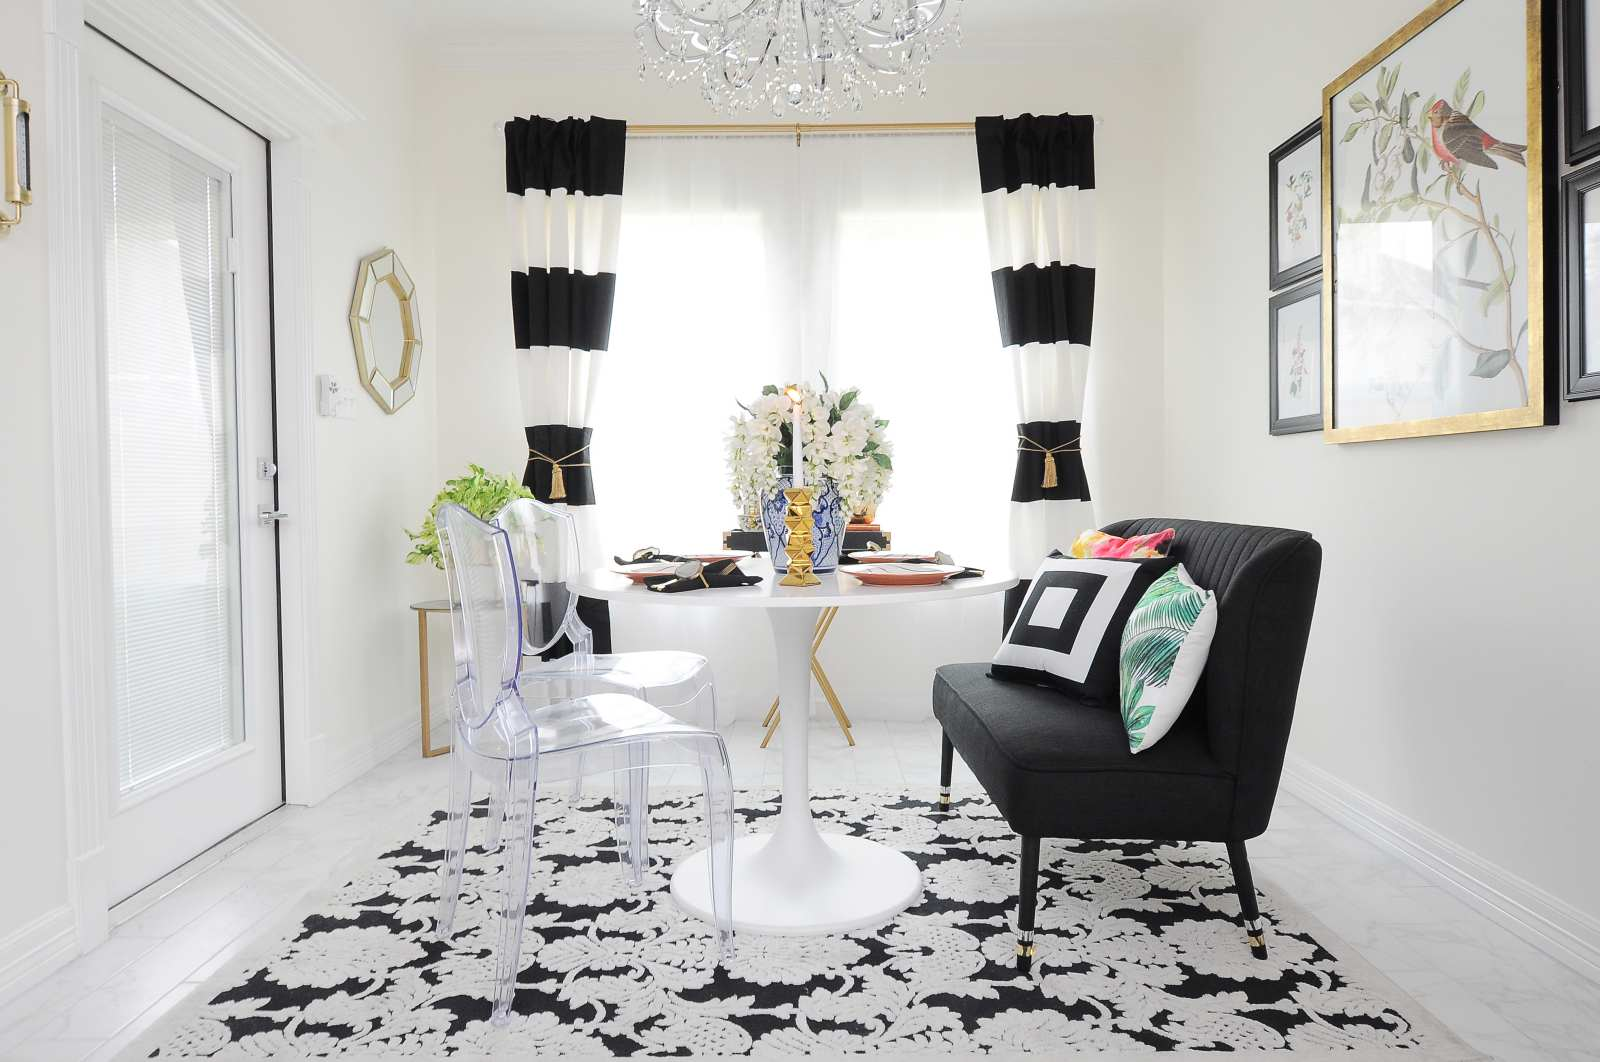 A $100 dining room makeover with gorgeous black, white and gold accents. Love all the botanical and audubon touches.